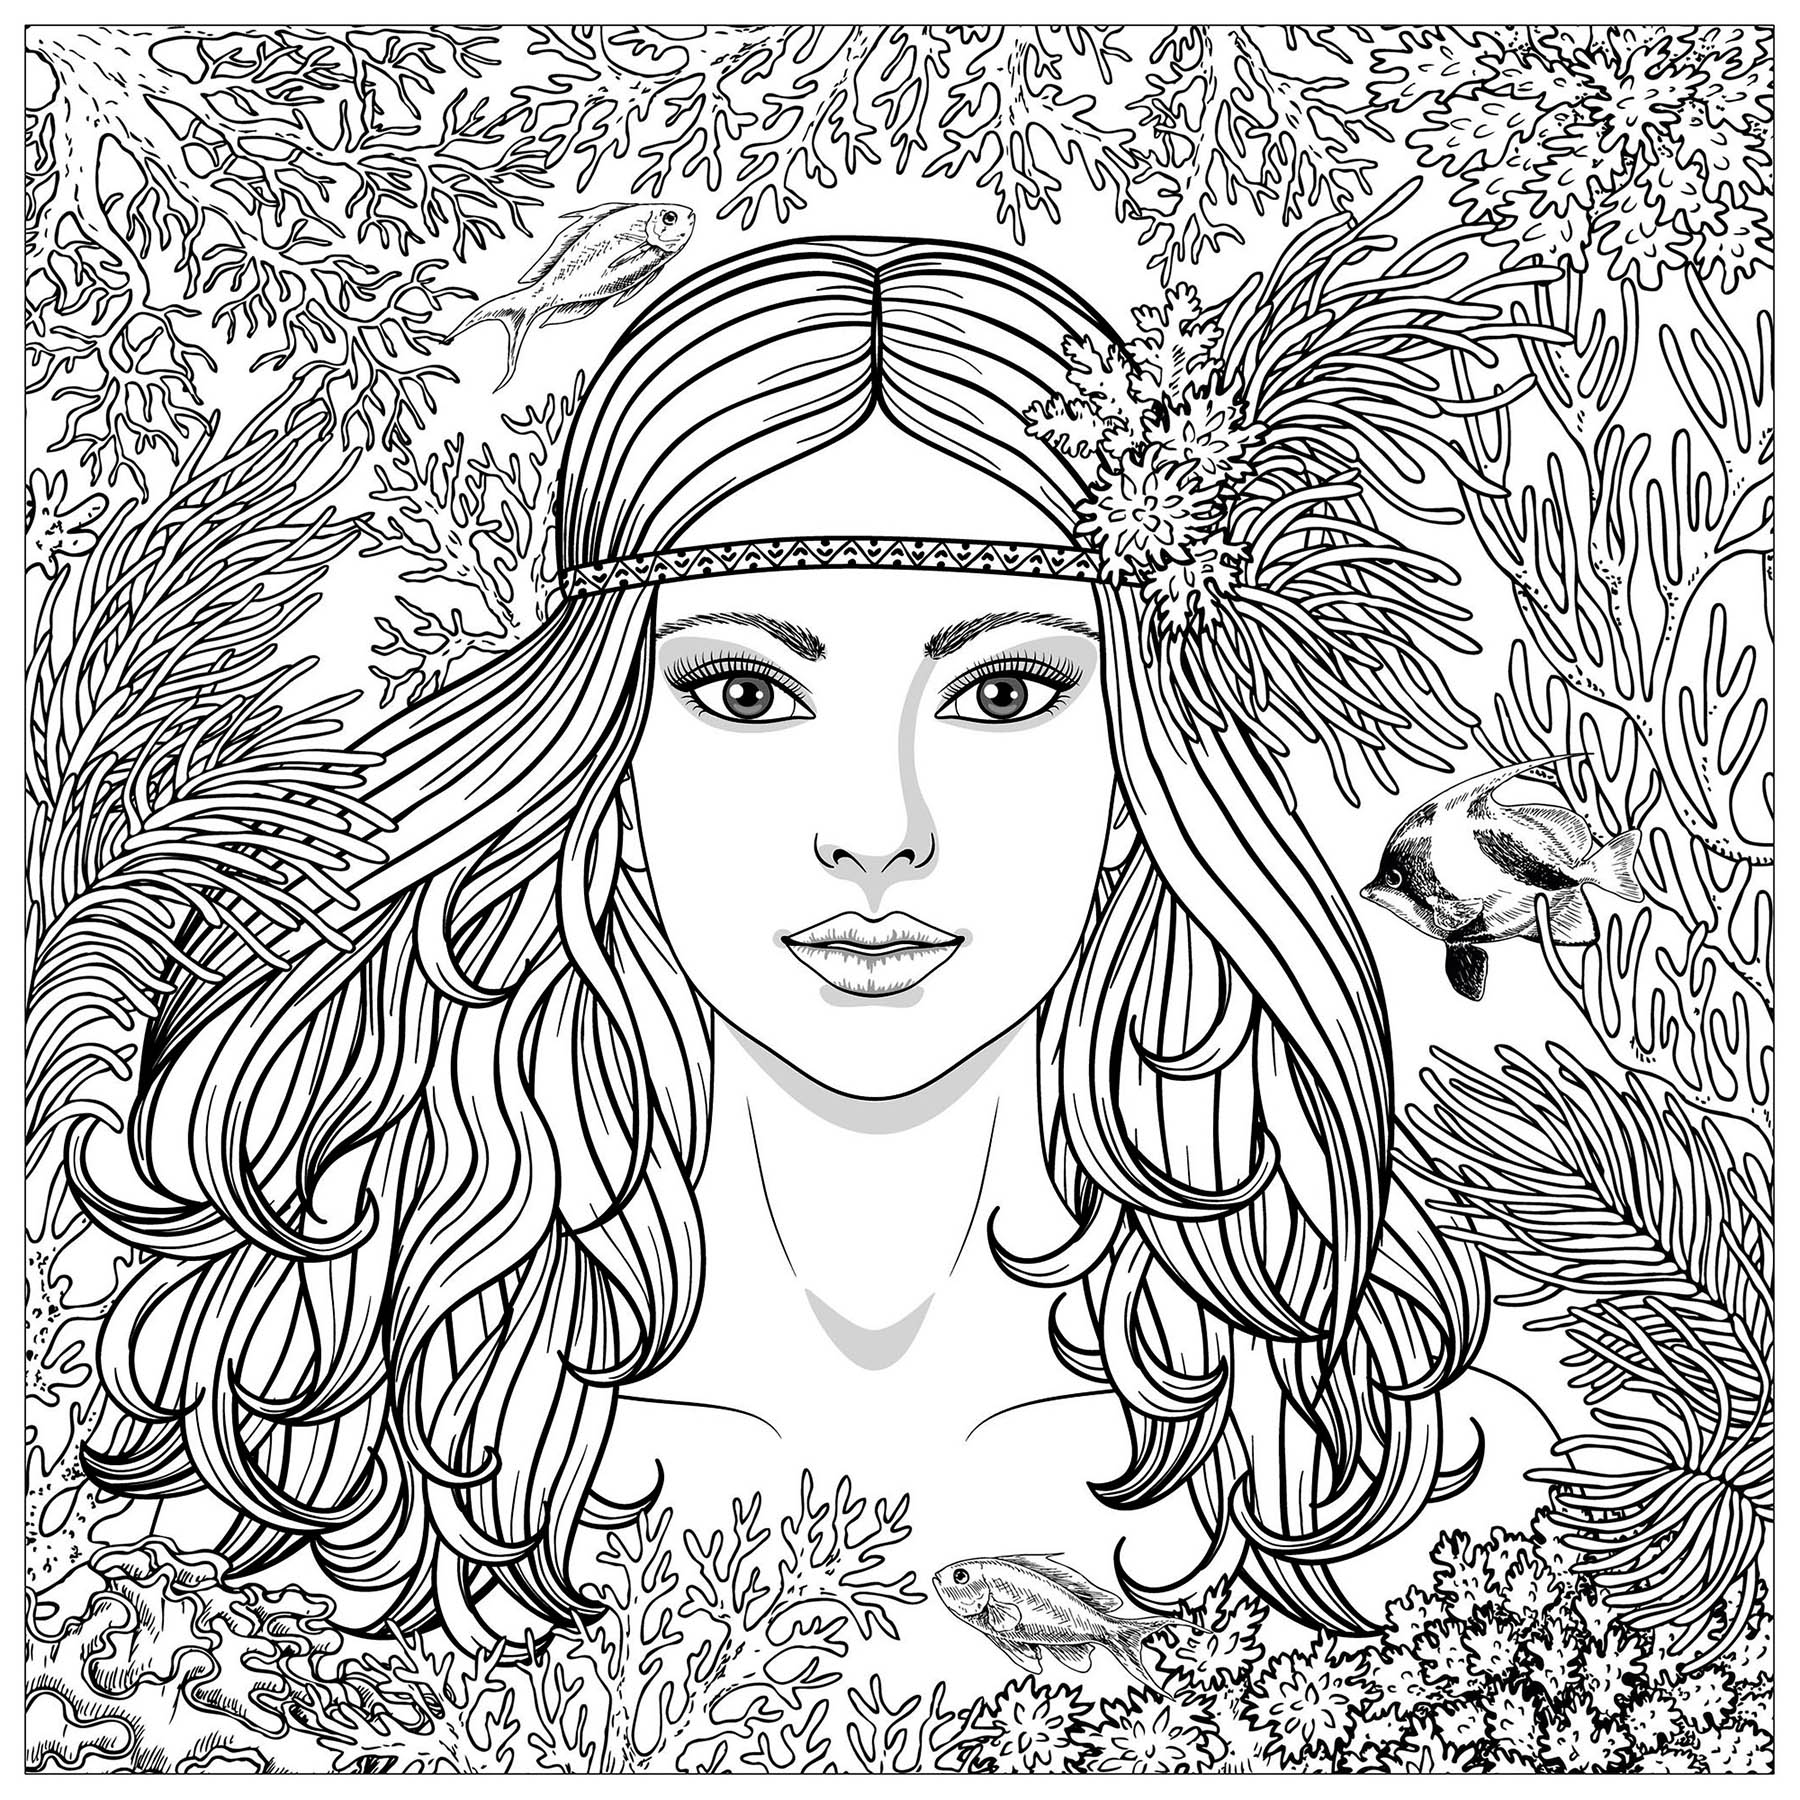 coloring pages for adults women woman coloring pages for adults page 3 women pages for coloring adults